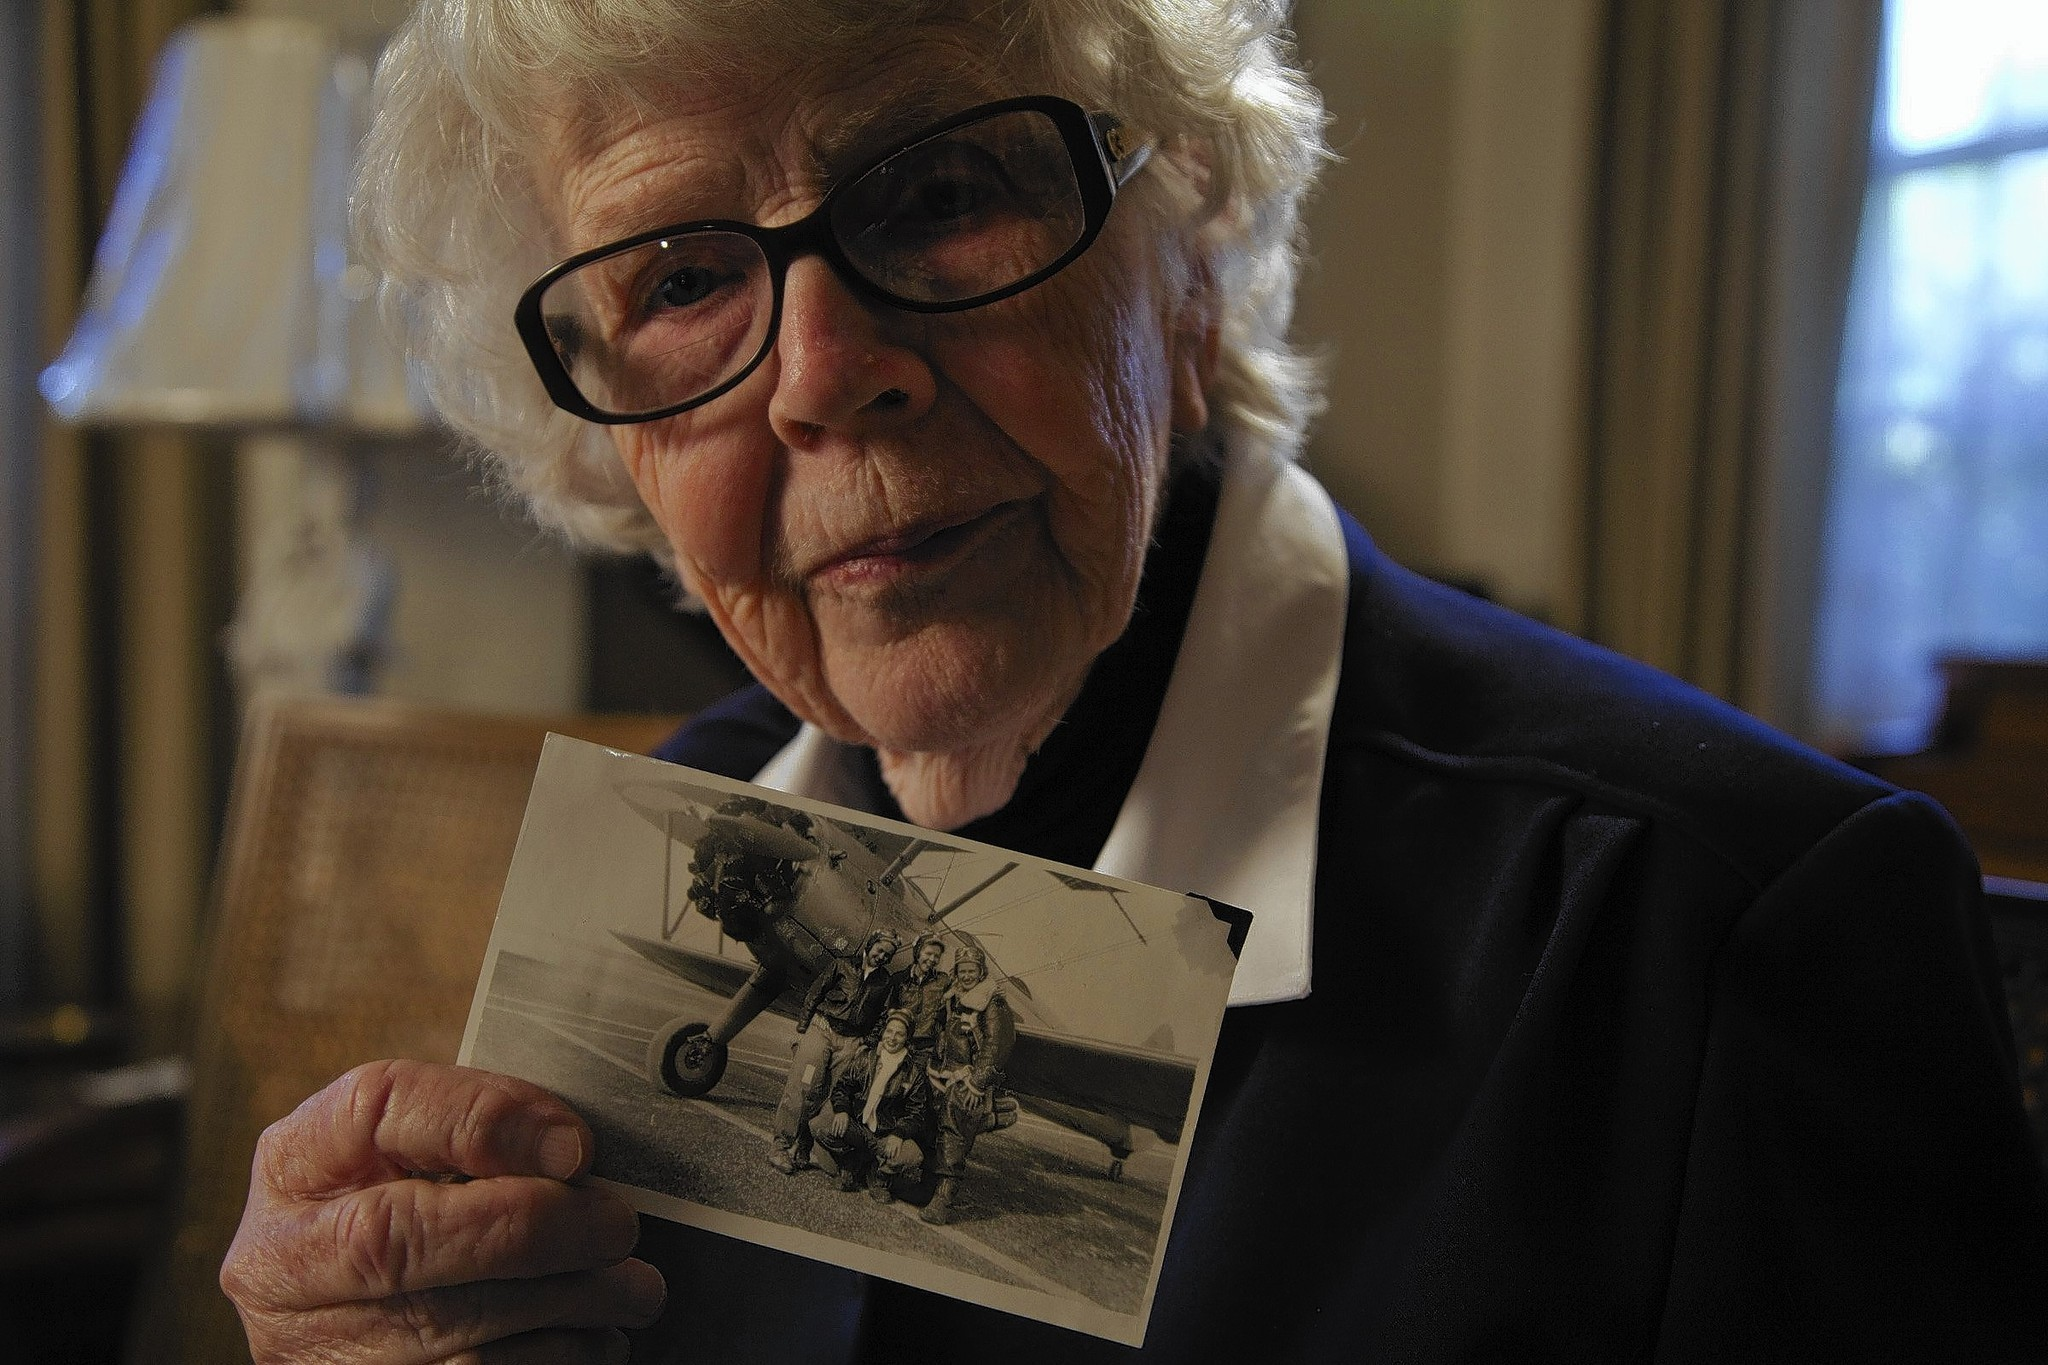 Women pilots of WWII will get grand recognition in Rose Parade